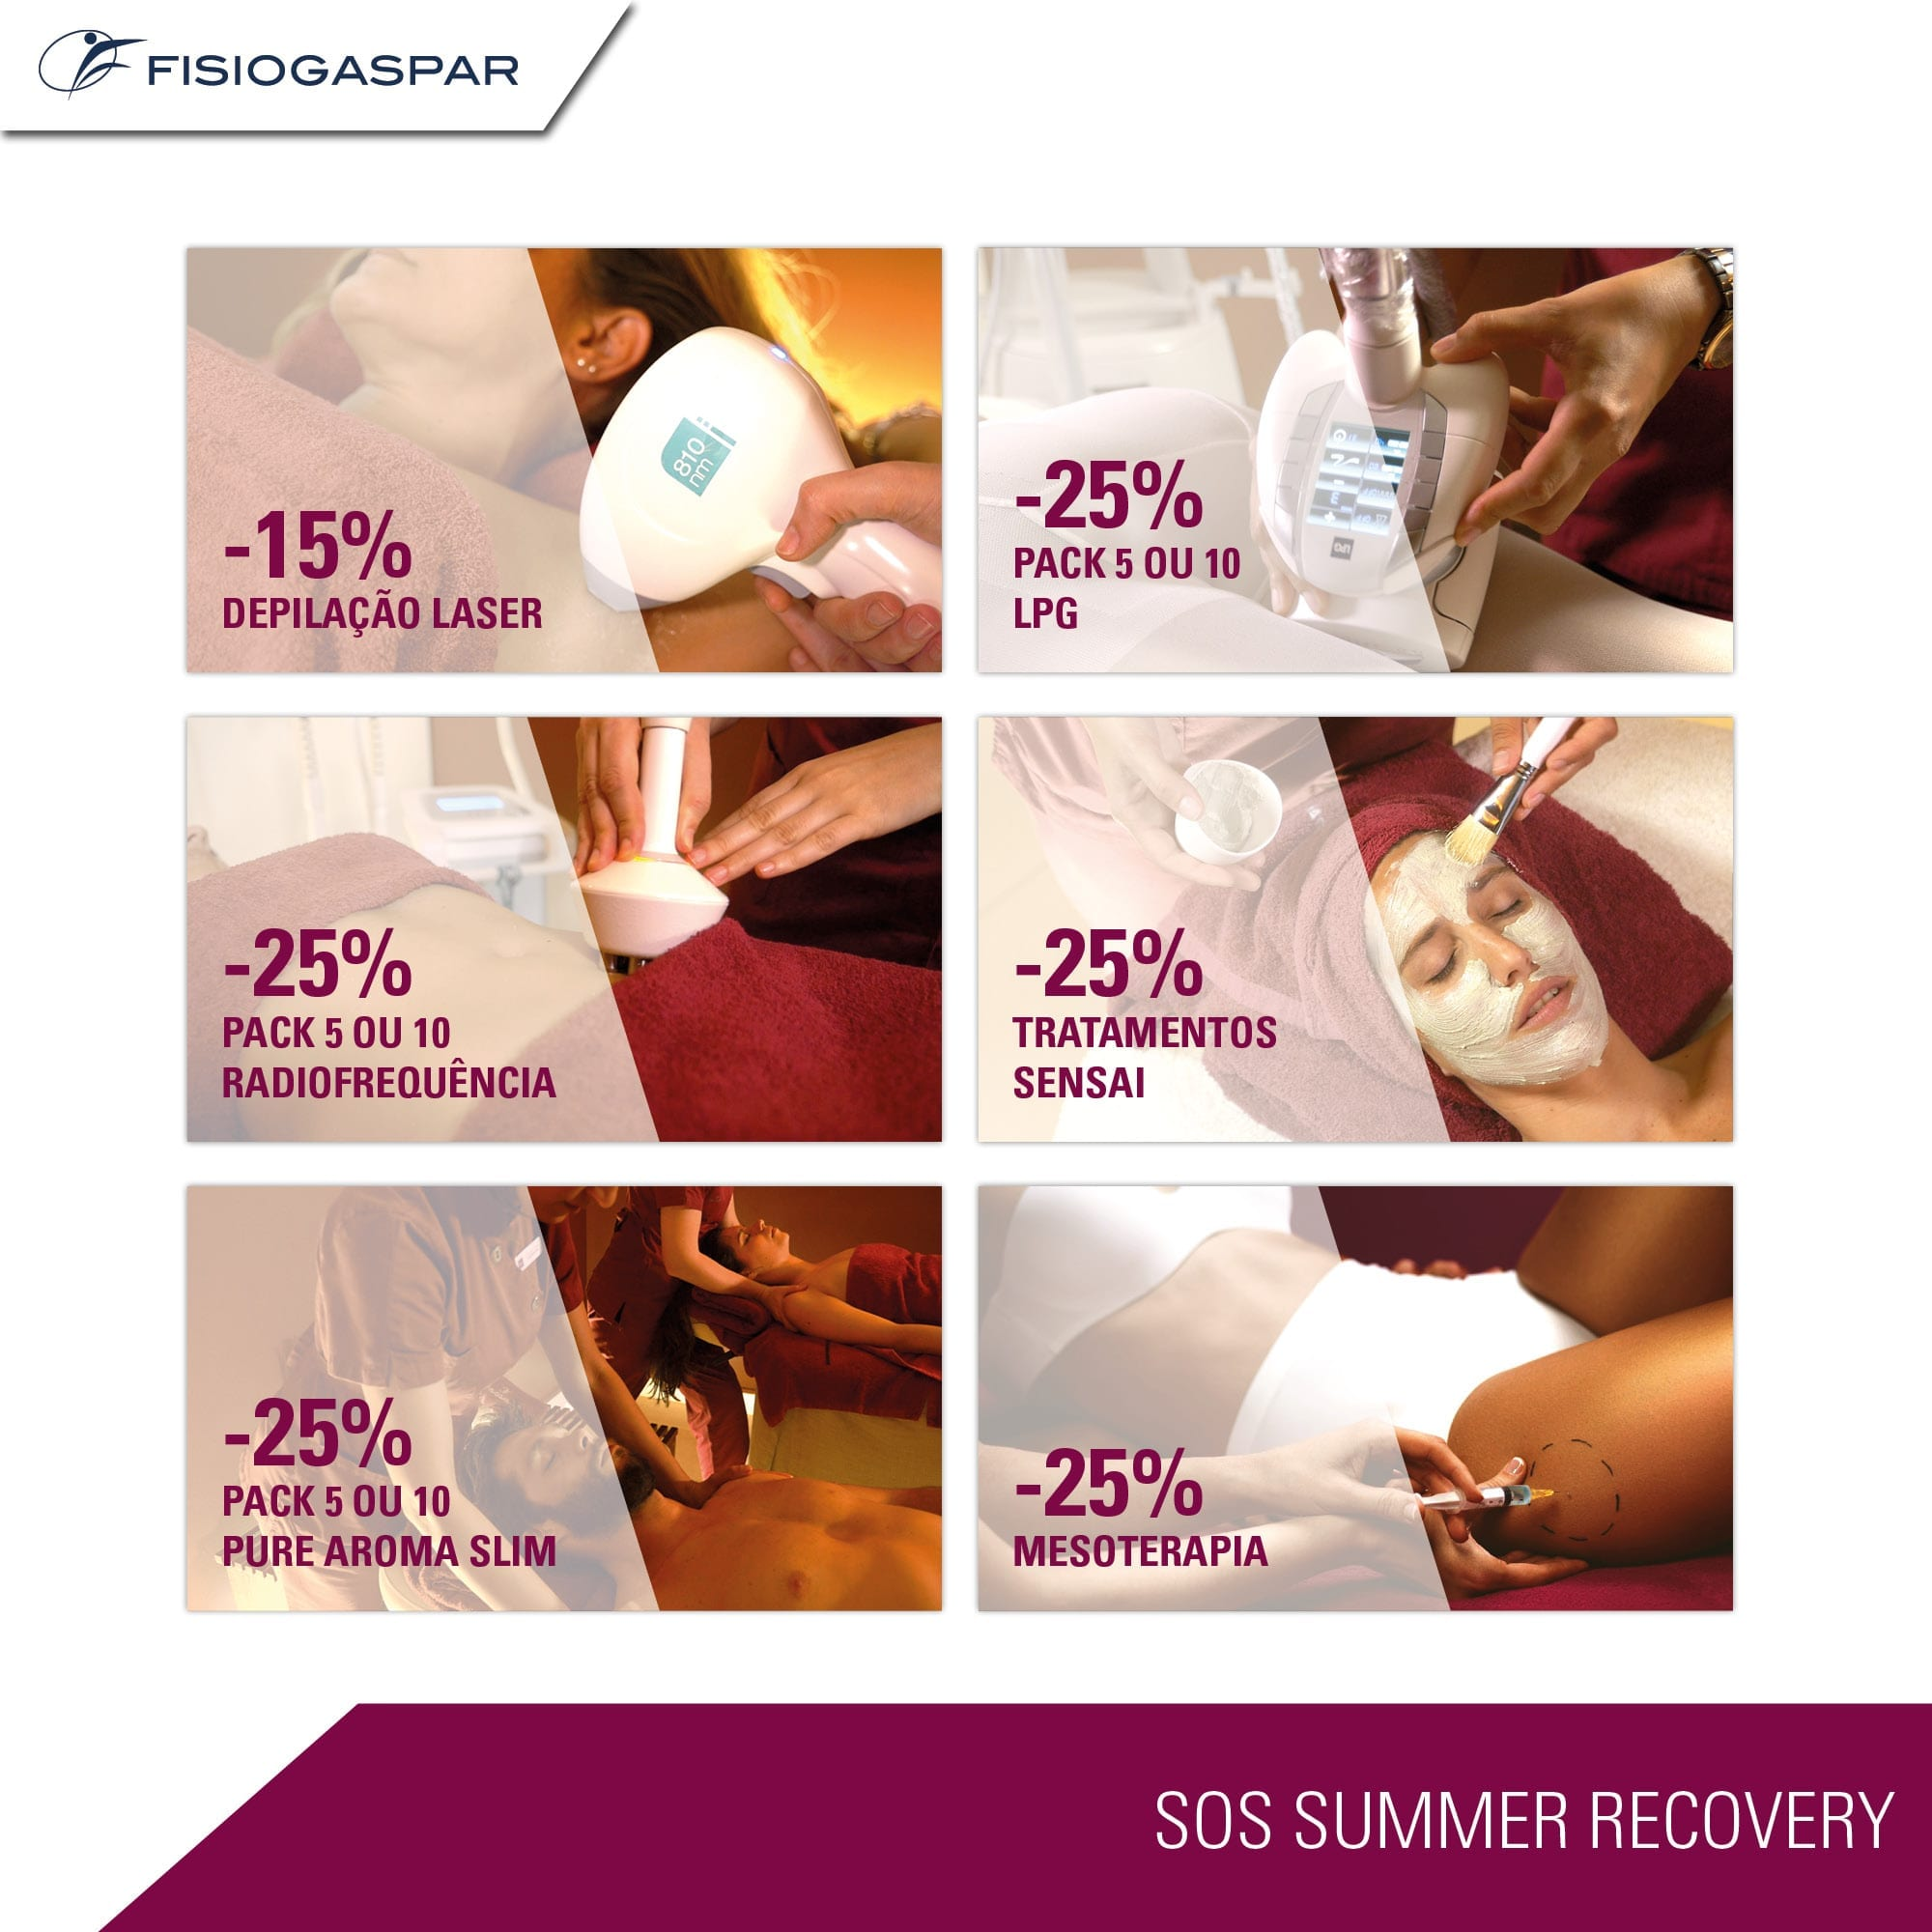 SOS Summer Recovery